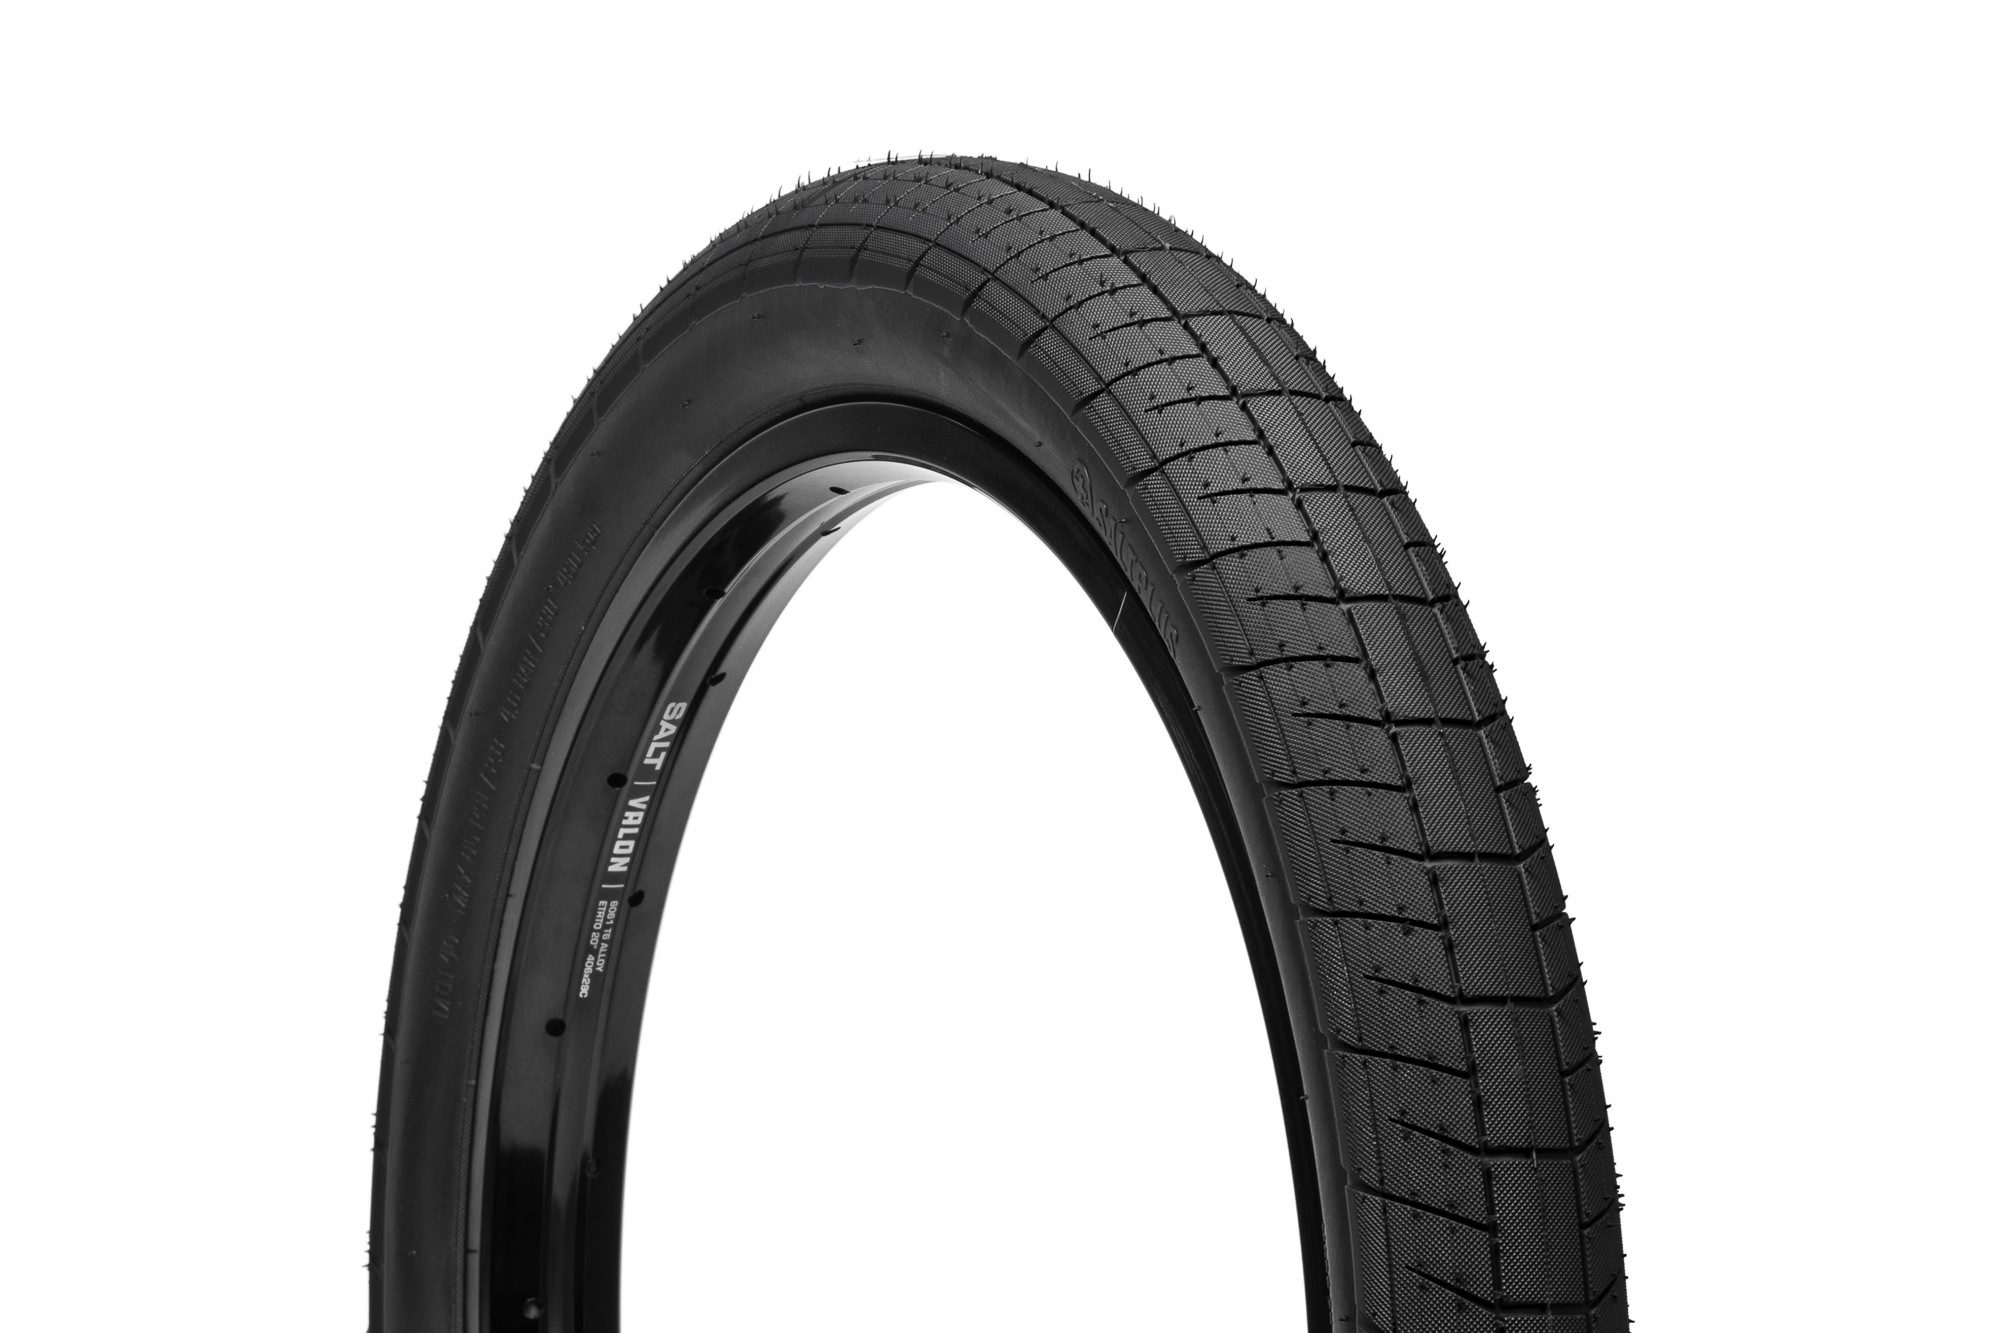 SaltPlus_Sting_tire_black_01